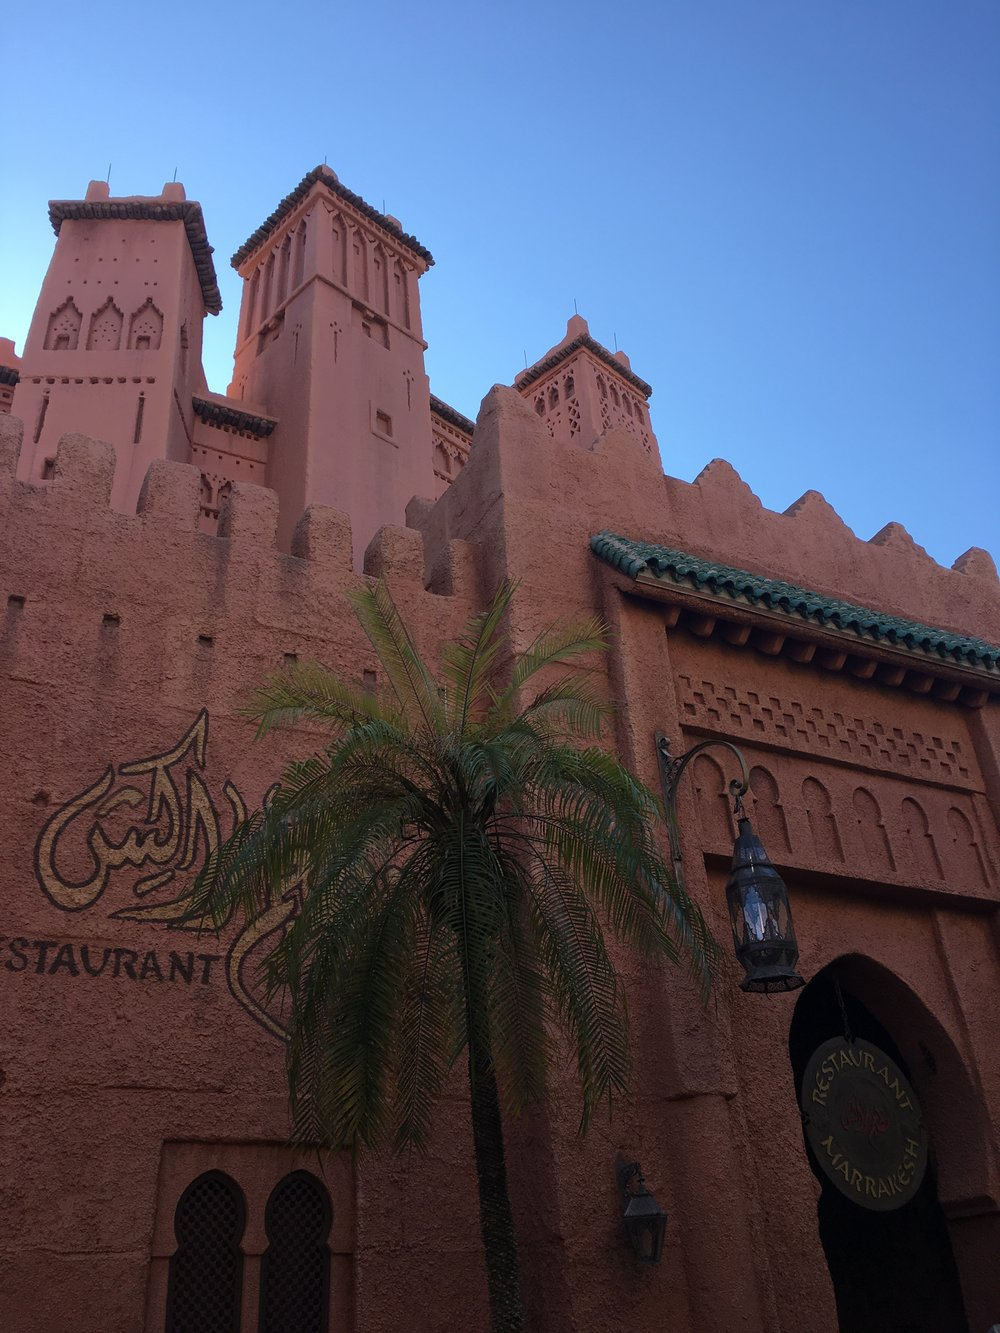 IMG 4260 - Walt Disney World Honeymoon Part 8: Everything I Did and Ate at Epcot's World Showcase